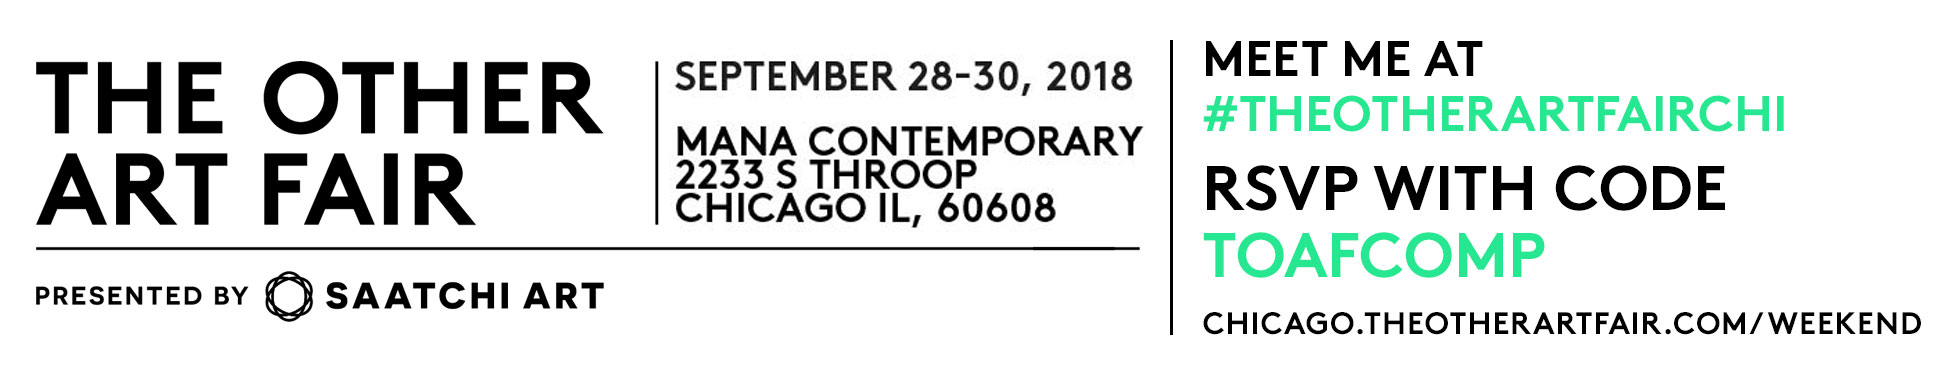 Chicago_OAF-ticketcode.jpg